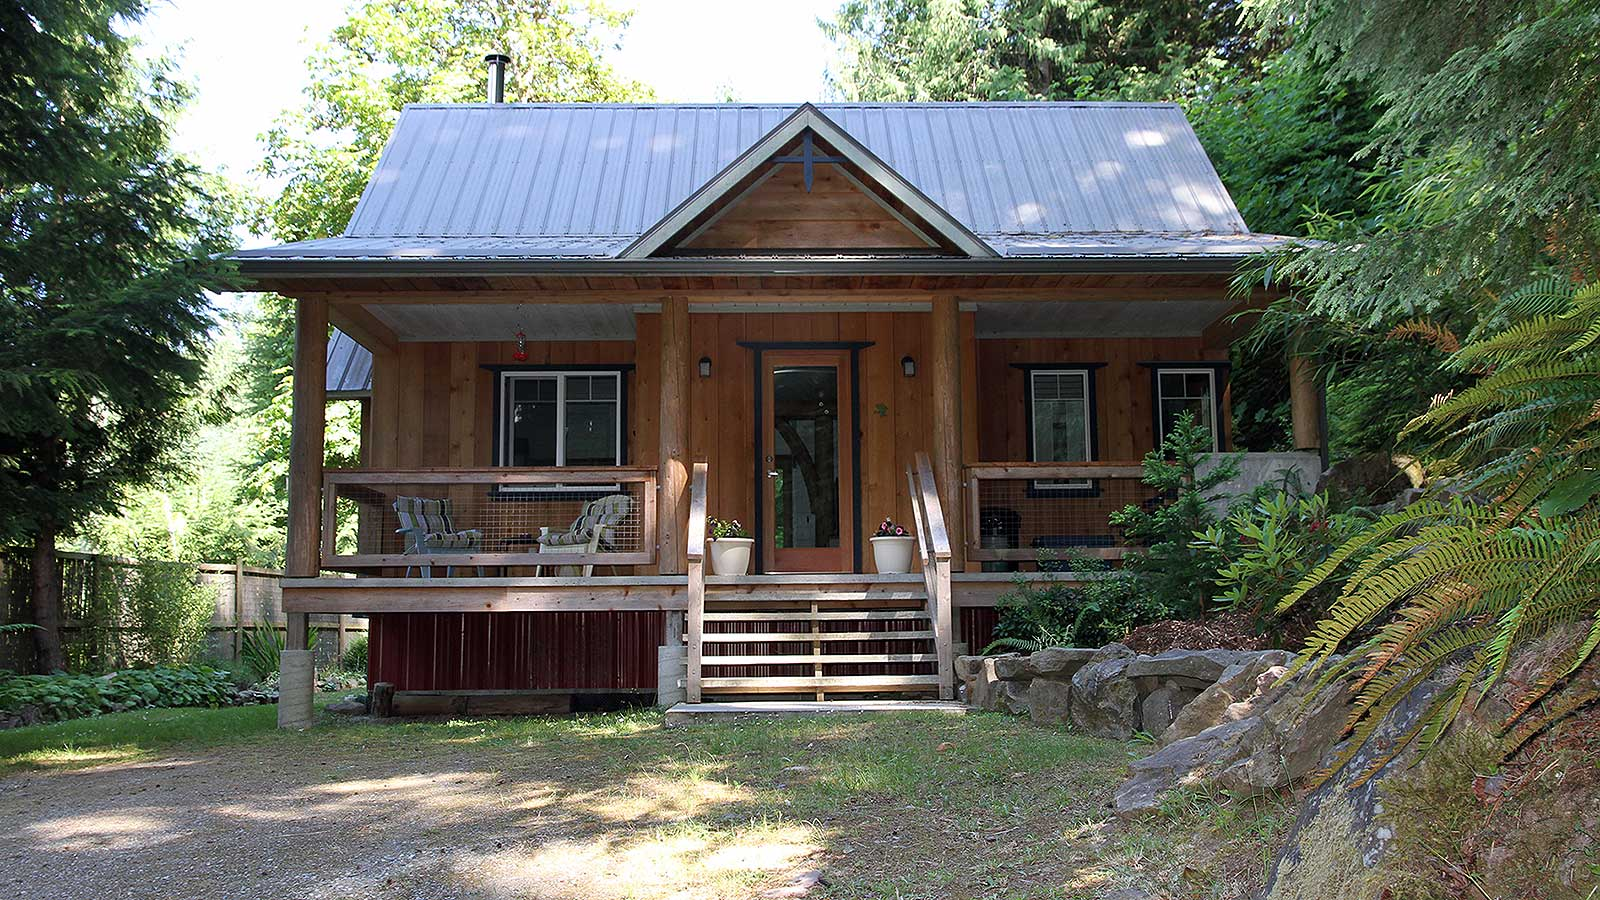 Lovely Small Cottages Part - 2: Birdsu0027 Hill Cottage Is Nestled In The Rainforest On BCu0027s Salt Spring  Island. It